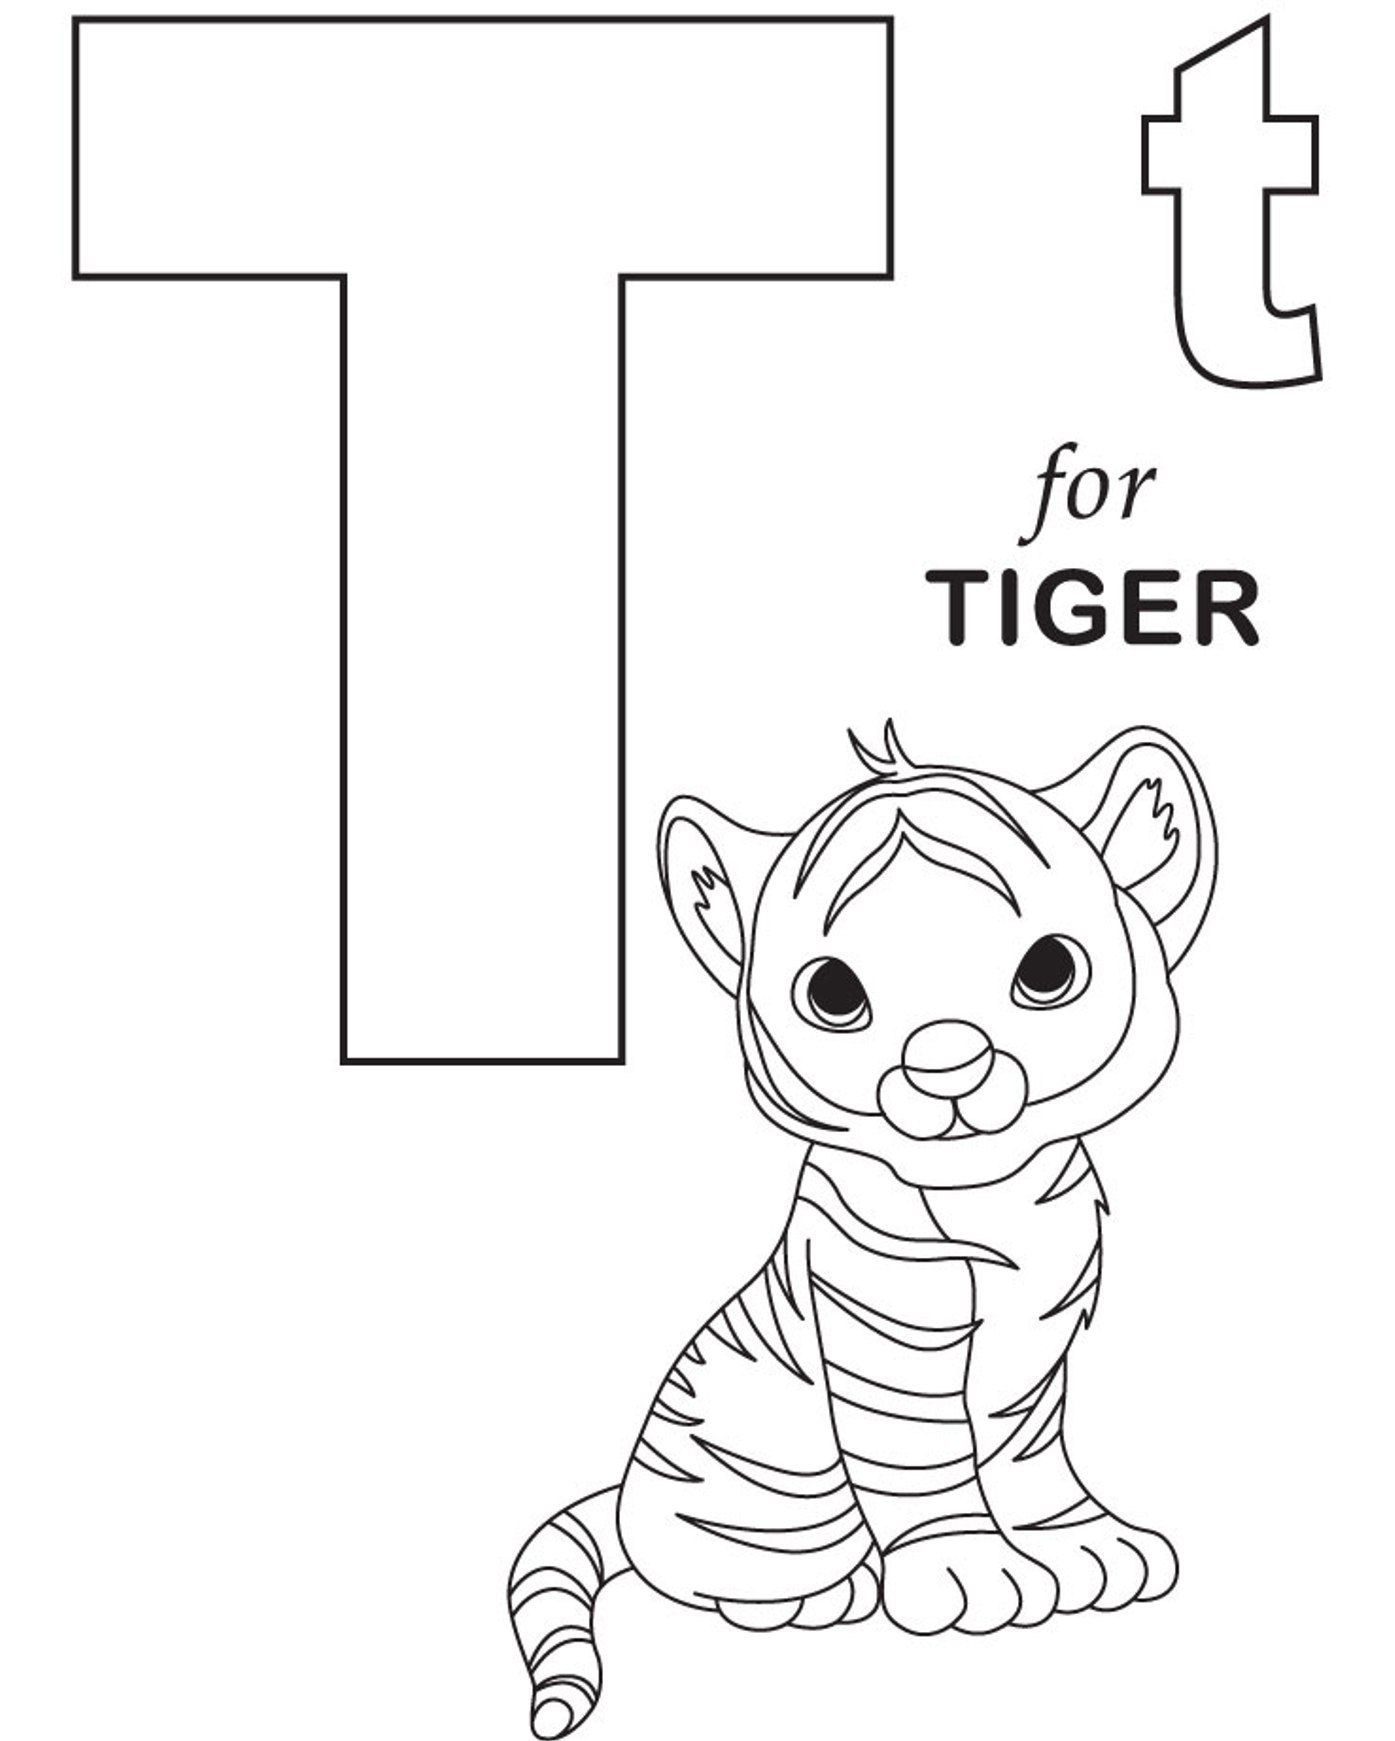 Little Tiger Alphabet Coloring